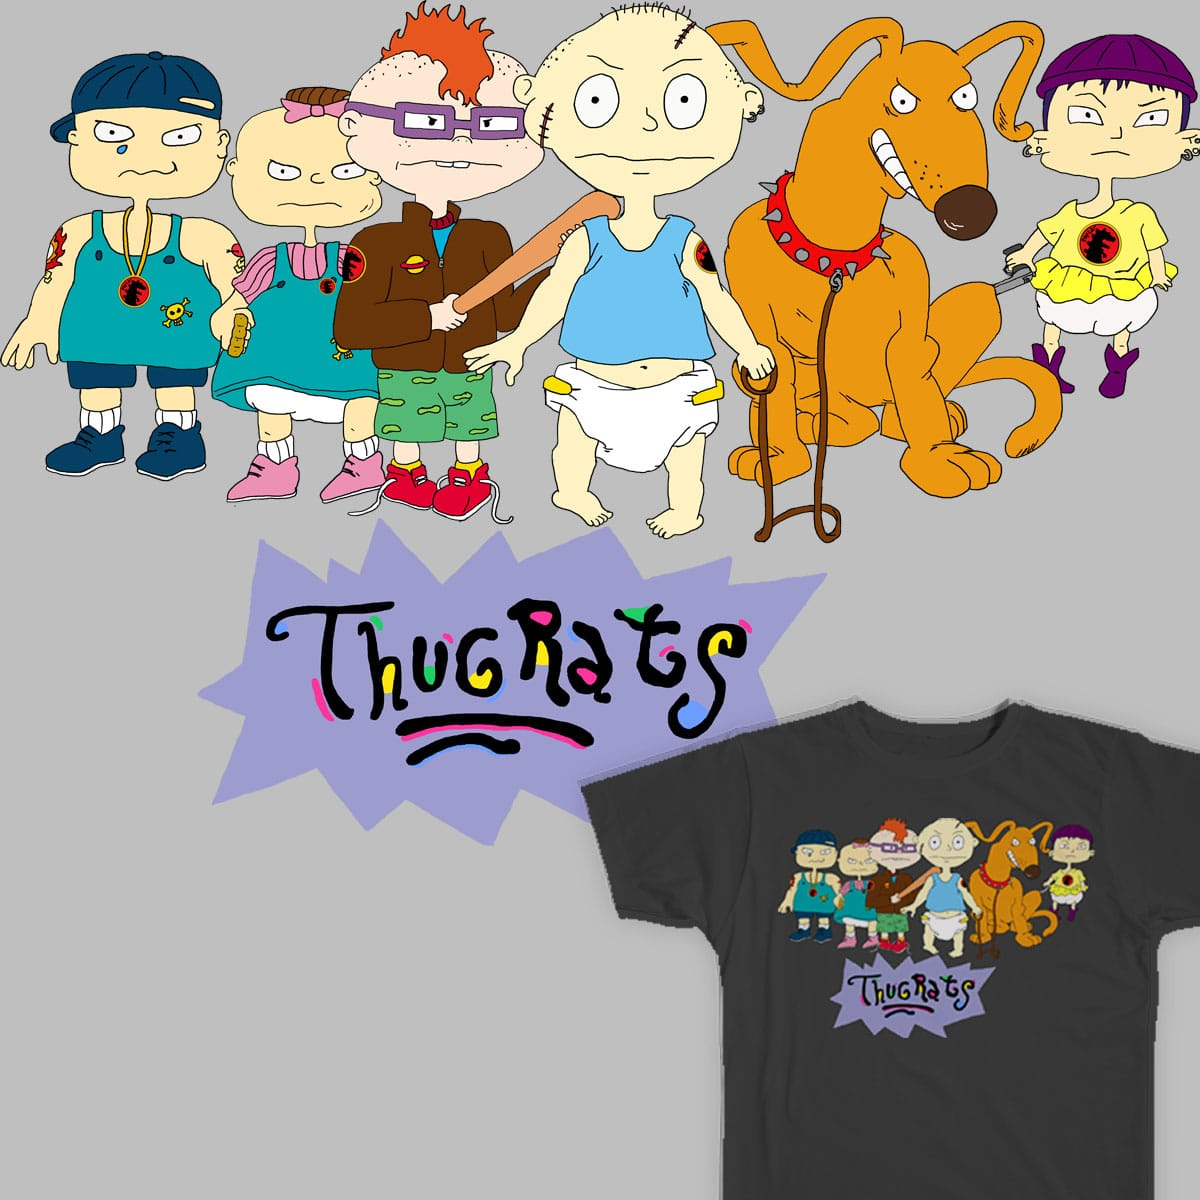 Thugrats by Wookiee_Art on Threadless